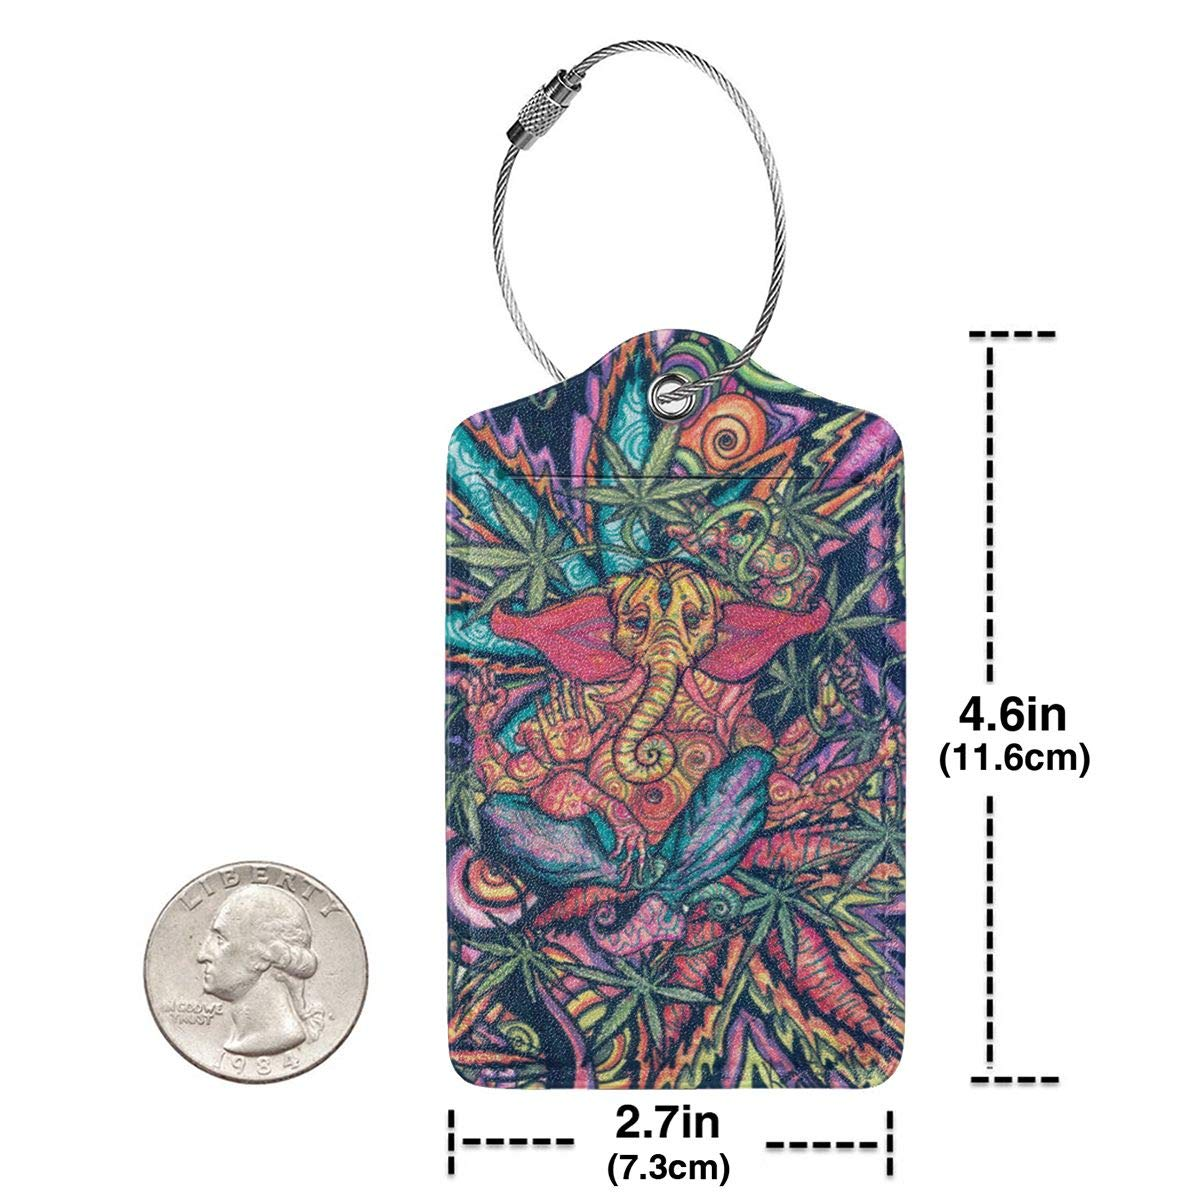 GoldK Bohemian Elephants and Tie Dye Weed Leather Luggage Tags Baggage Bag Instrument Tag Travel Labels Accessories with Privacy Cover